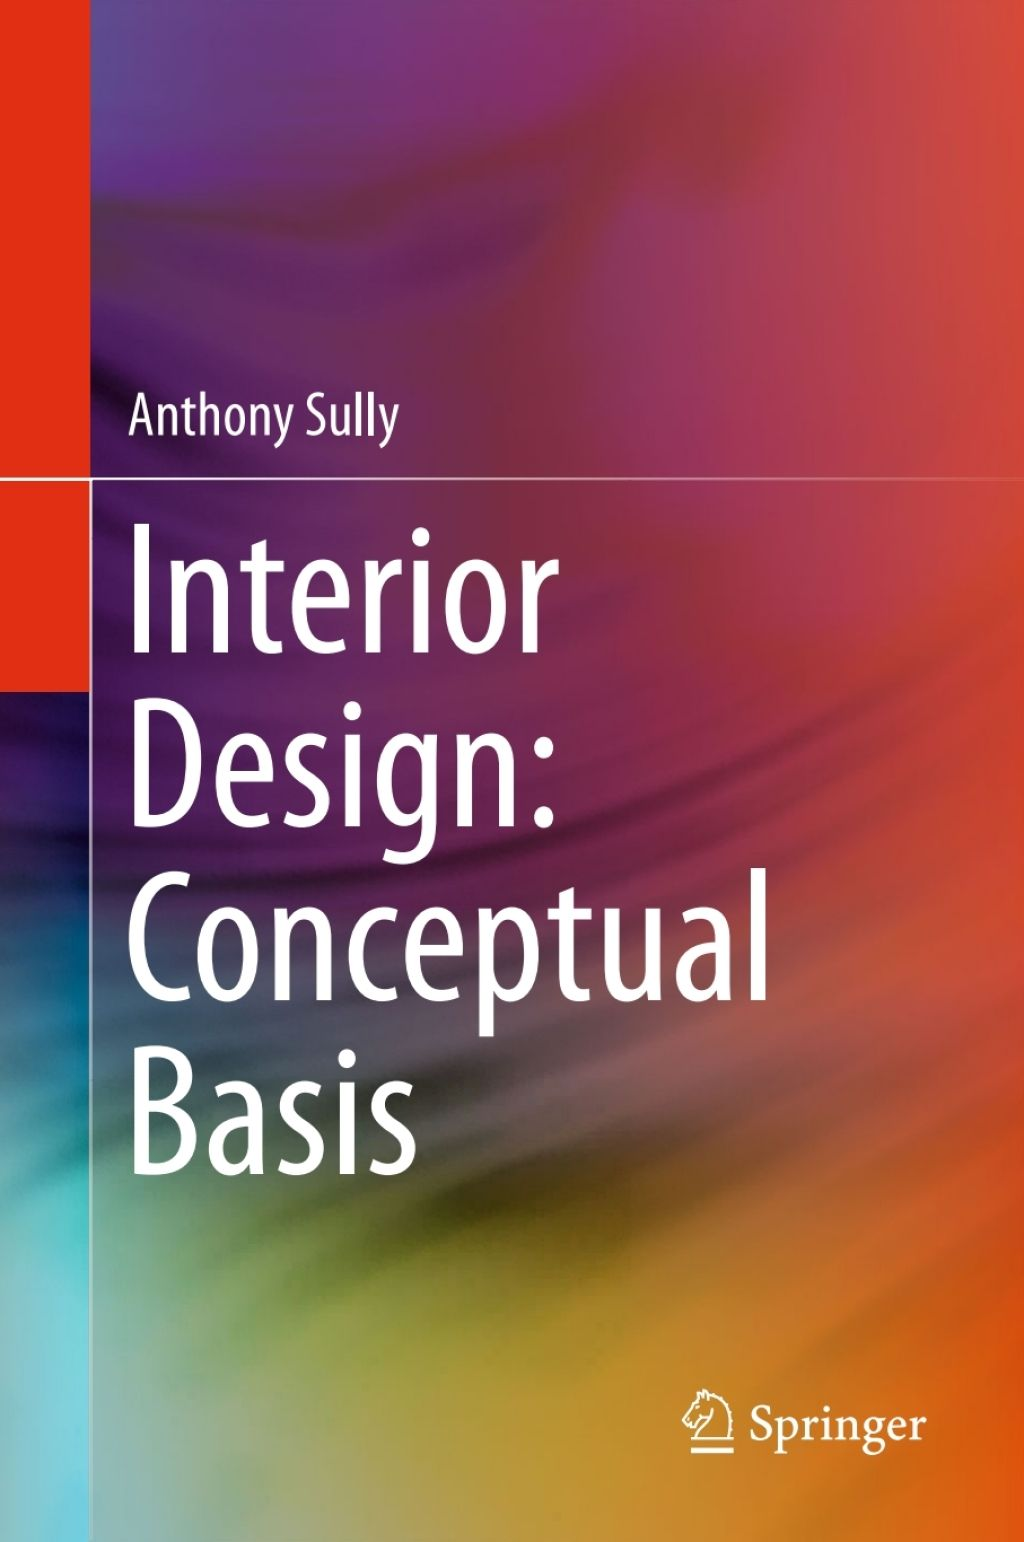 Interior Design Conceptual Basis Ebook In 2020 Interior Design Advice Interior Design Interior Design Help